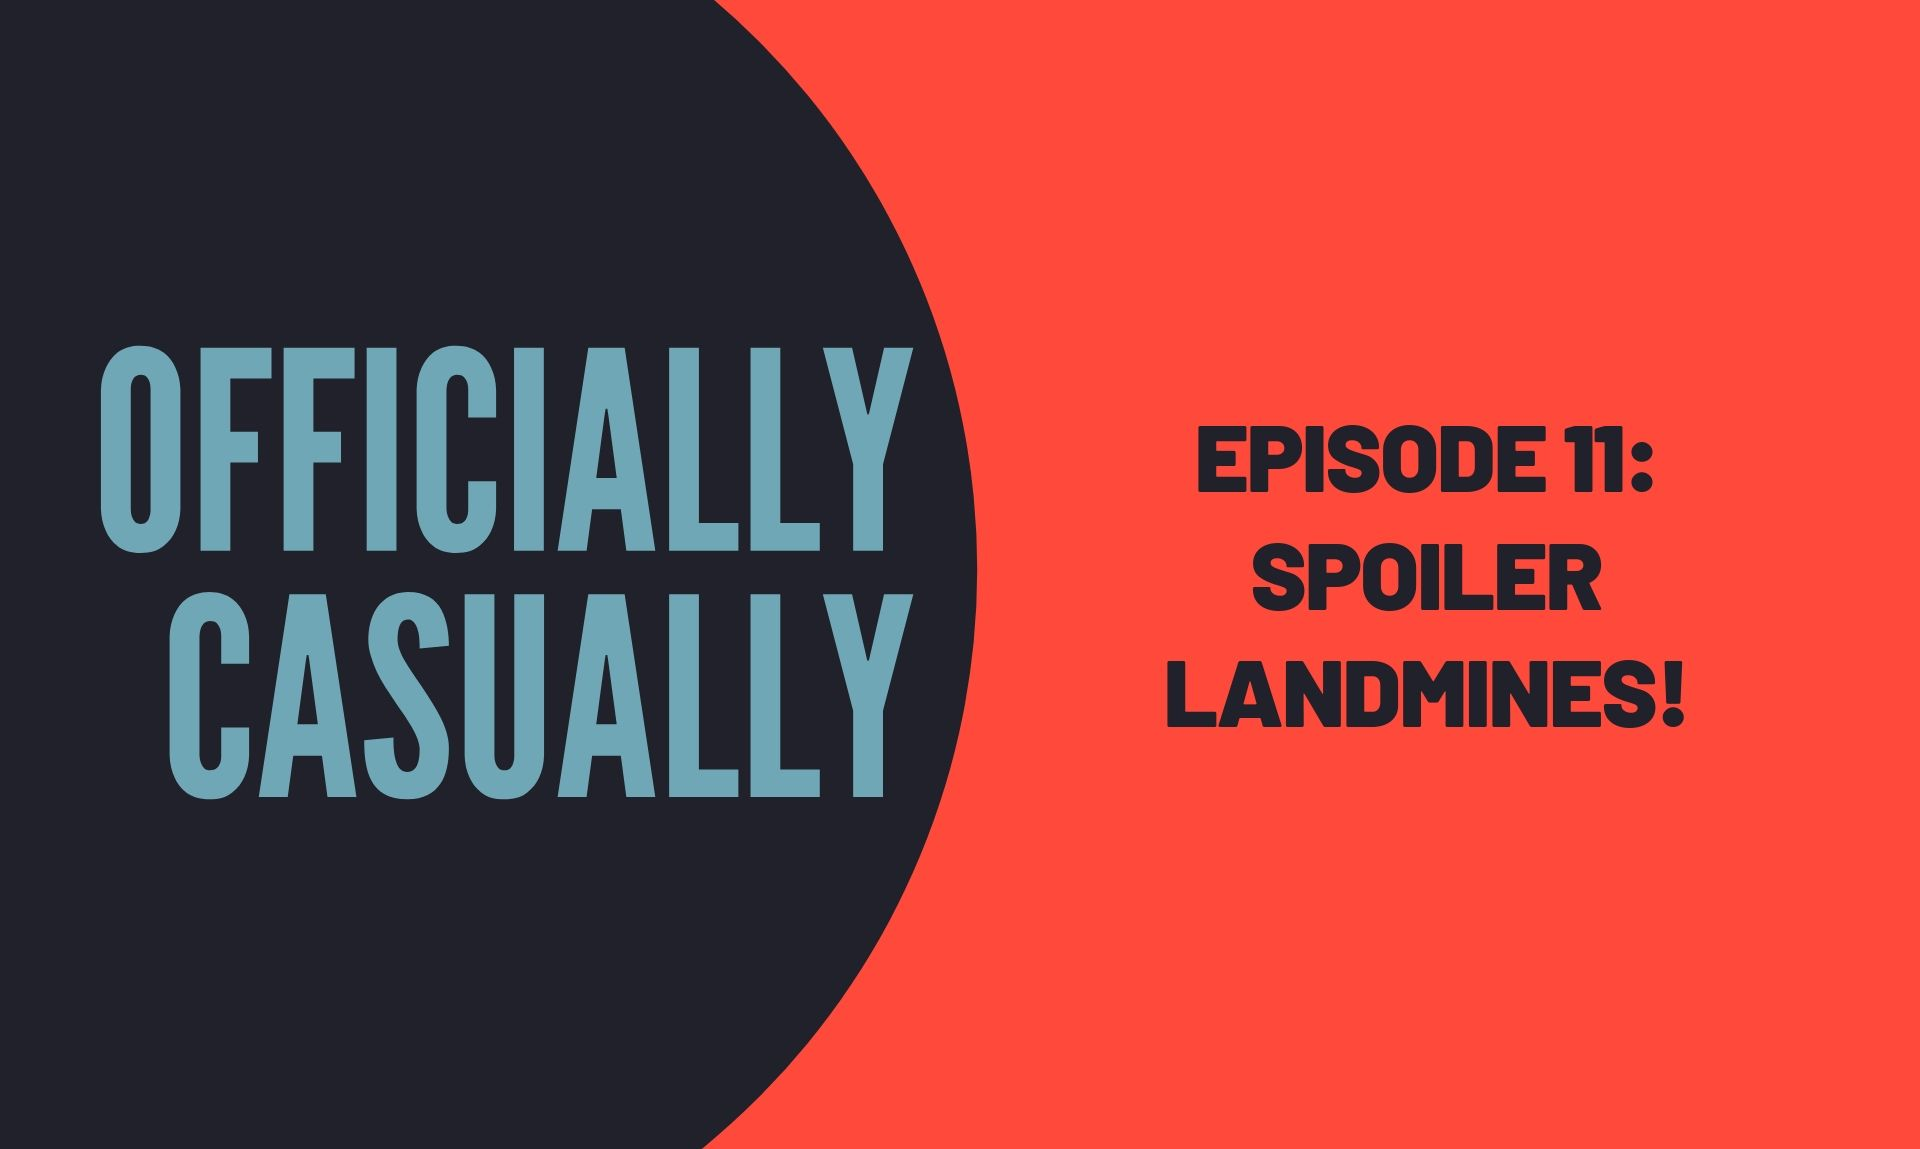 #11 EPISODE: SPOILER LANDMINES!